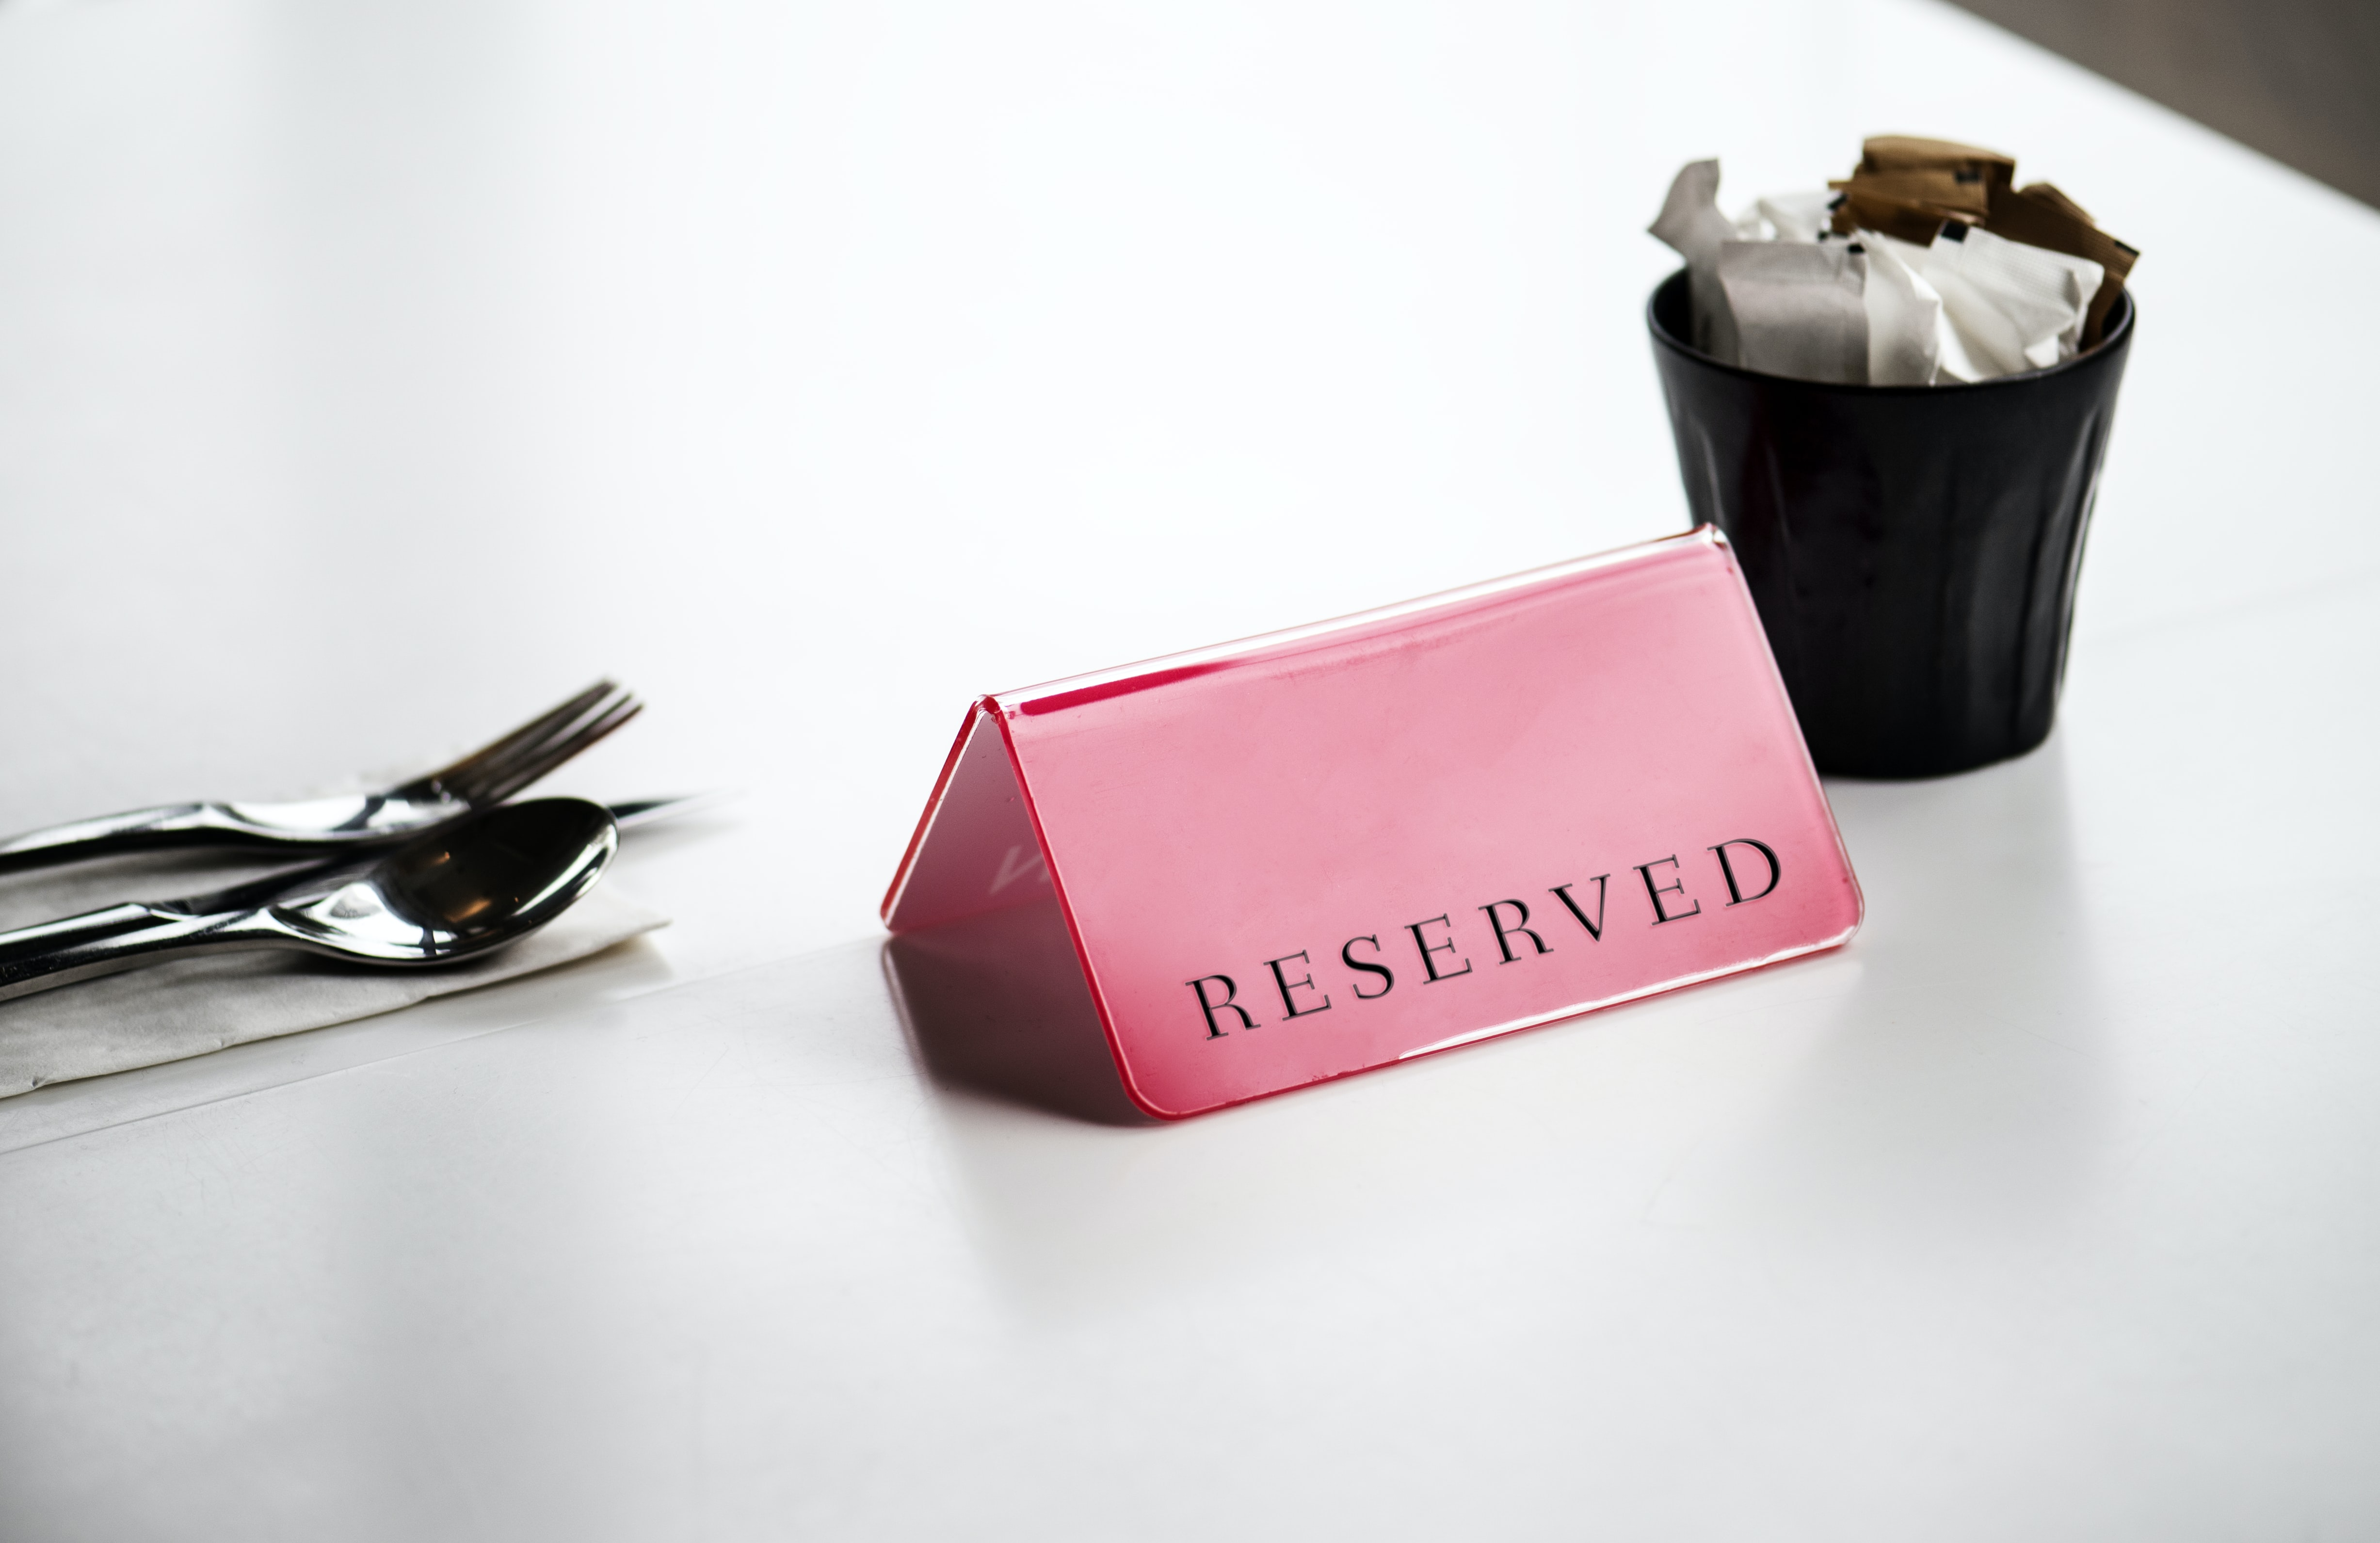 pink reserved signage near black cuo and gray stainless steel spoon and fork